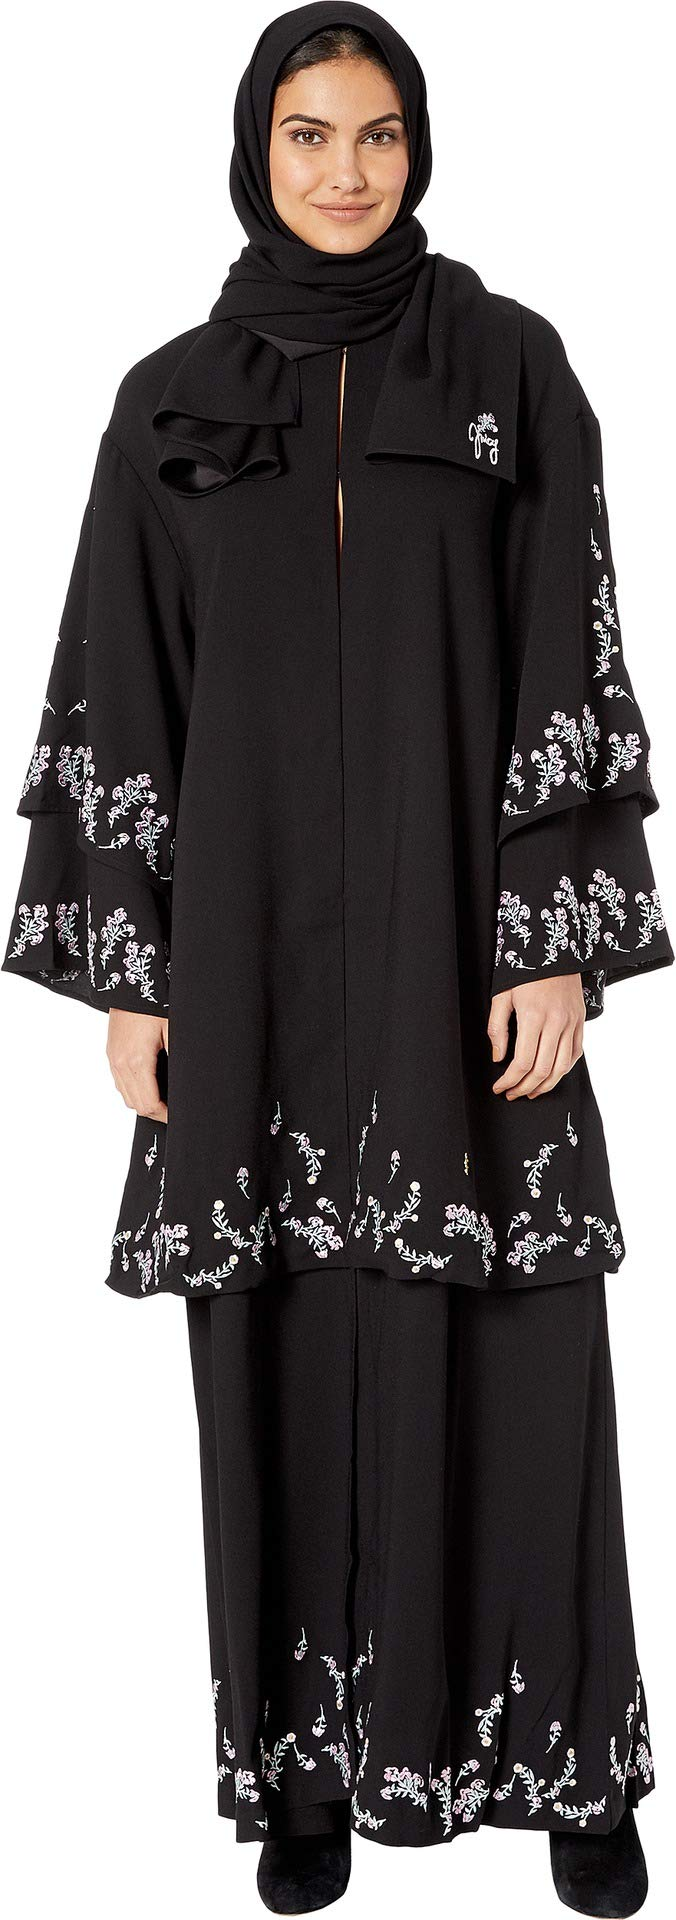 Juicy Couture Women's Floral Embroidered Abaya Pitch Black Petite/Small